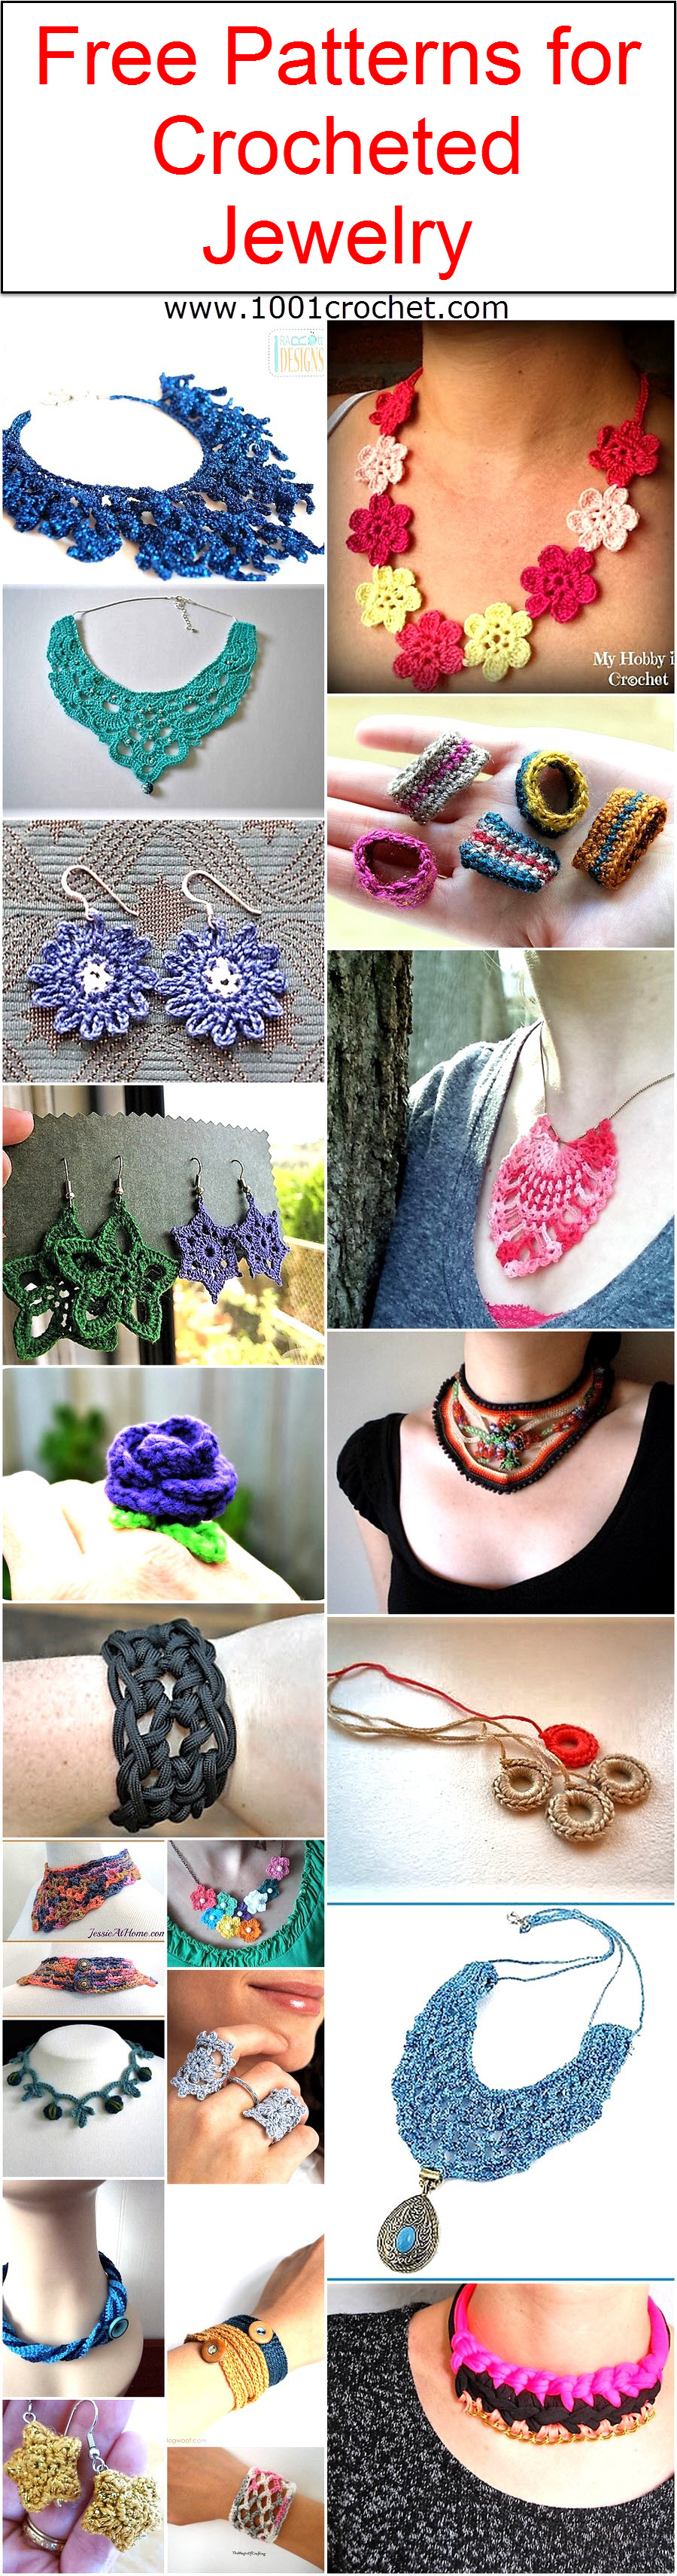 free-patterns-for-crocheted-jewelry